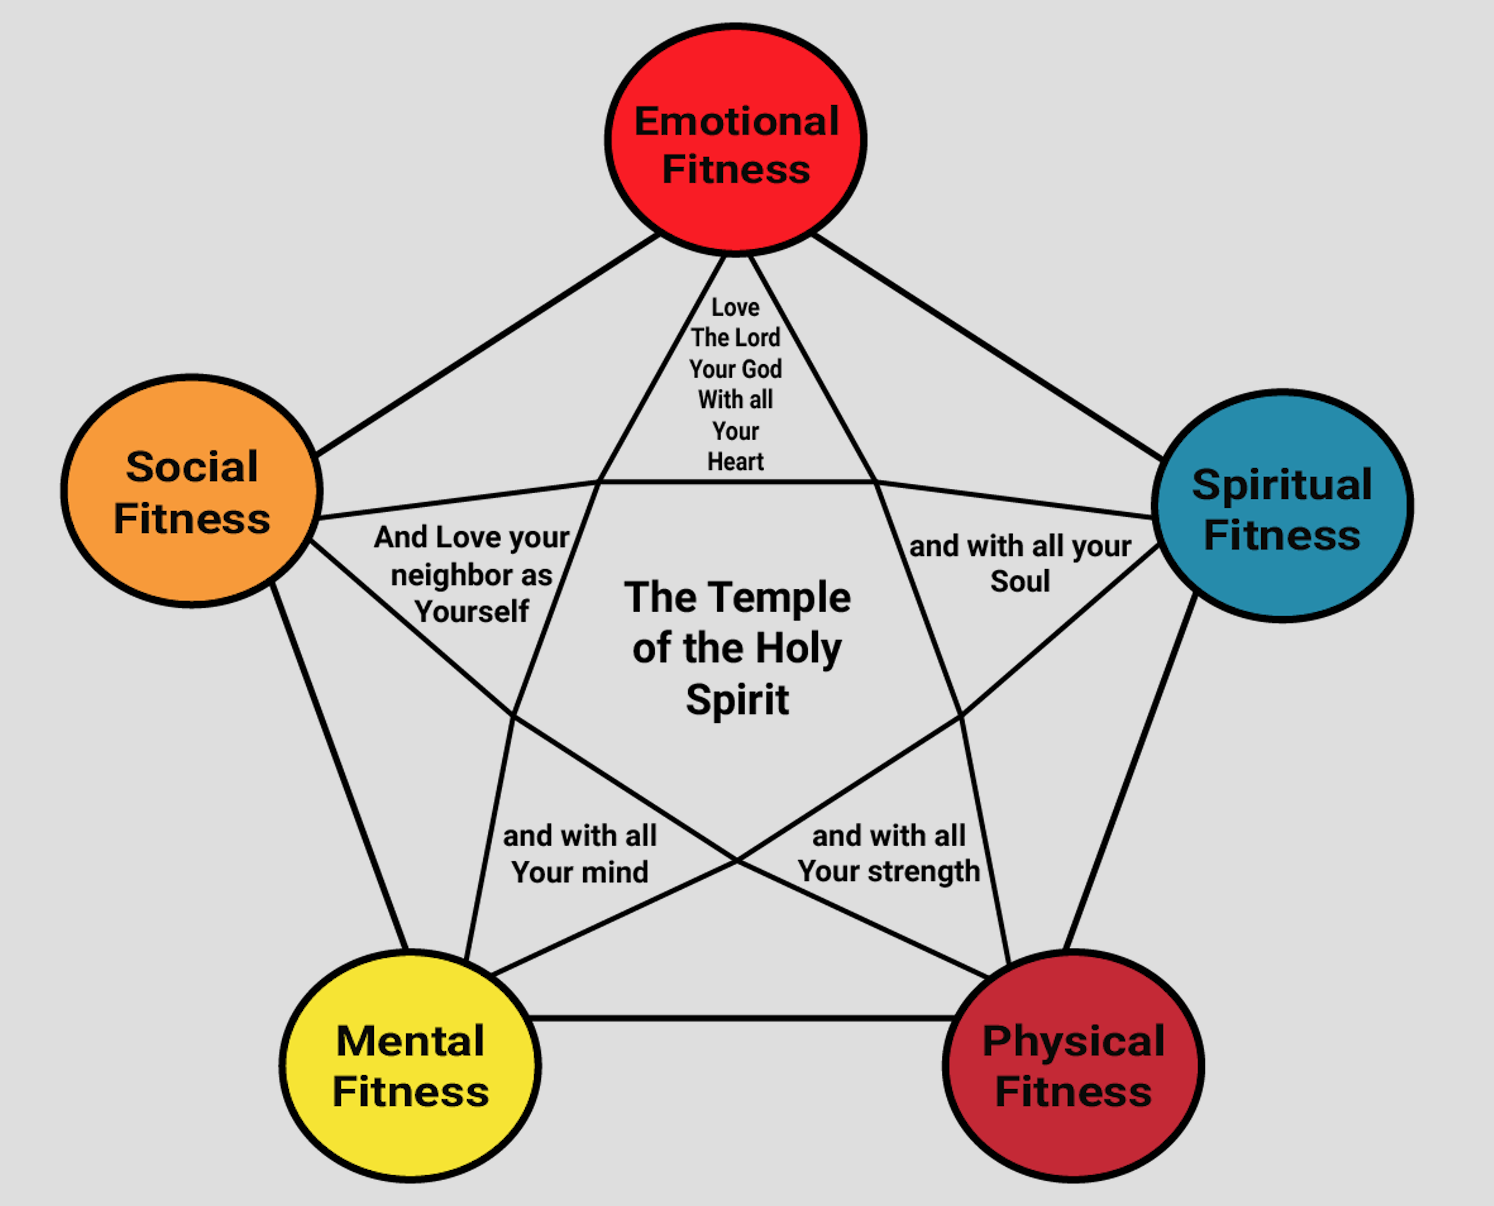 Five Fold Health is the Key to True Health, a grid of health, multicolor